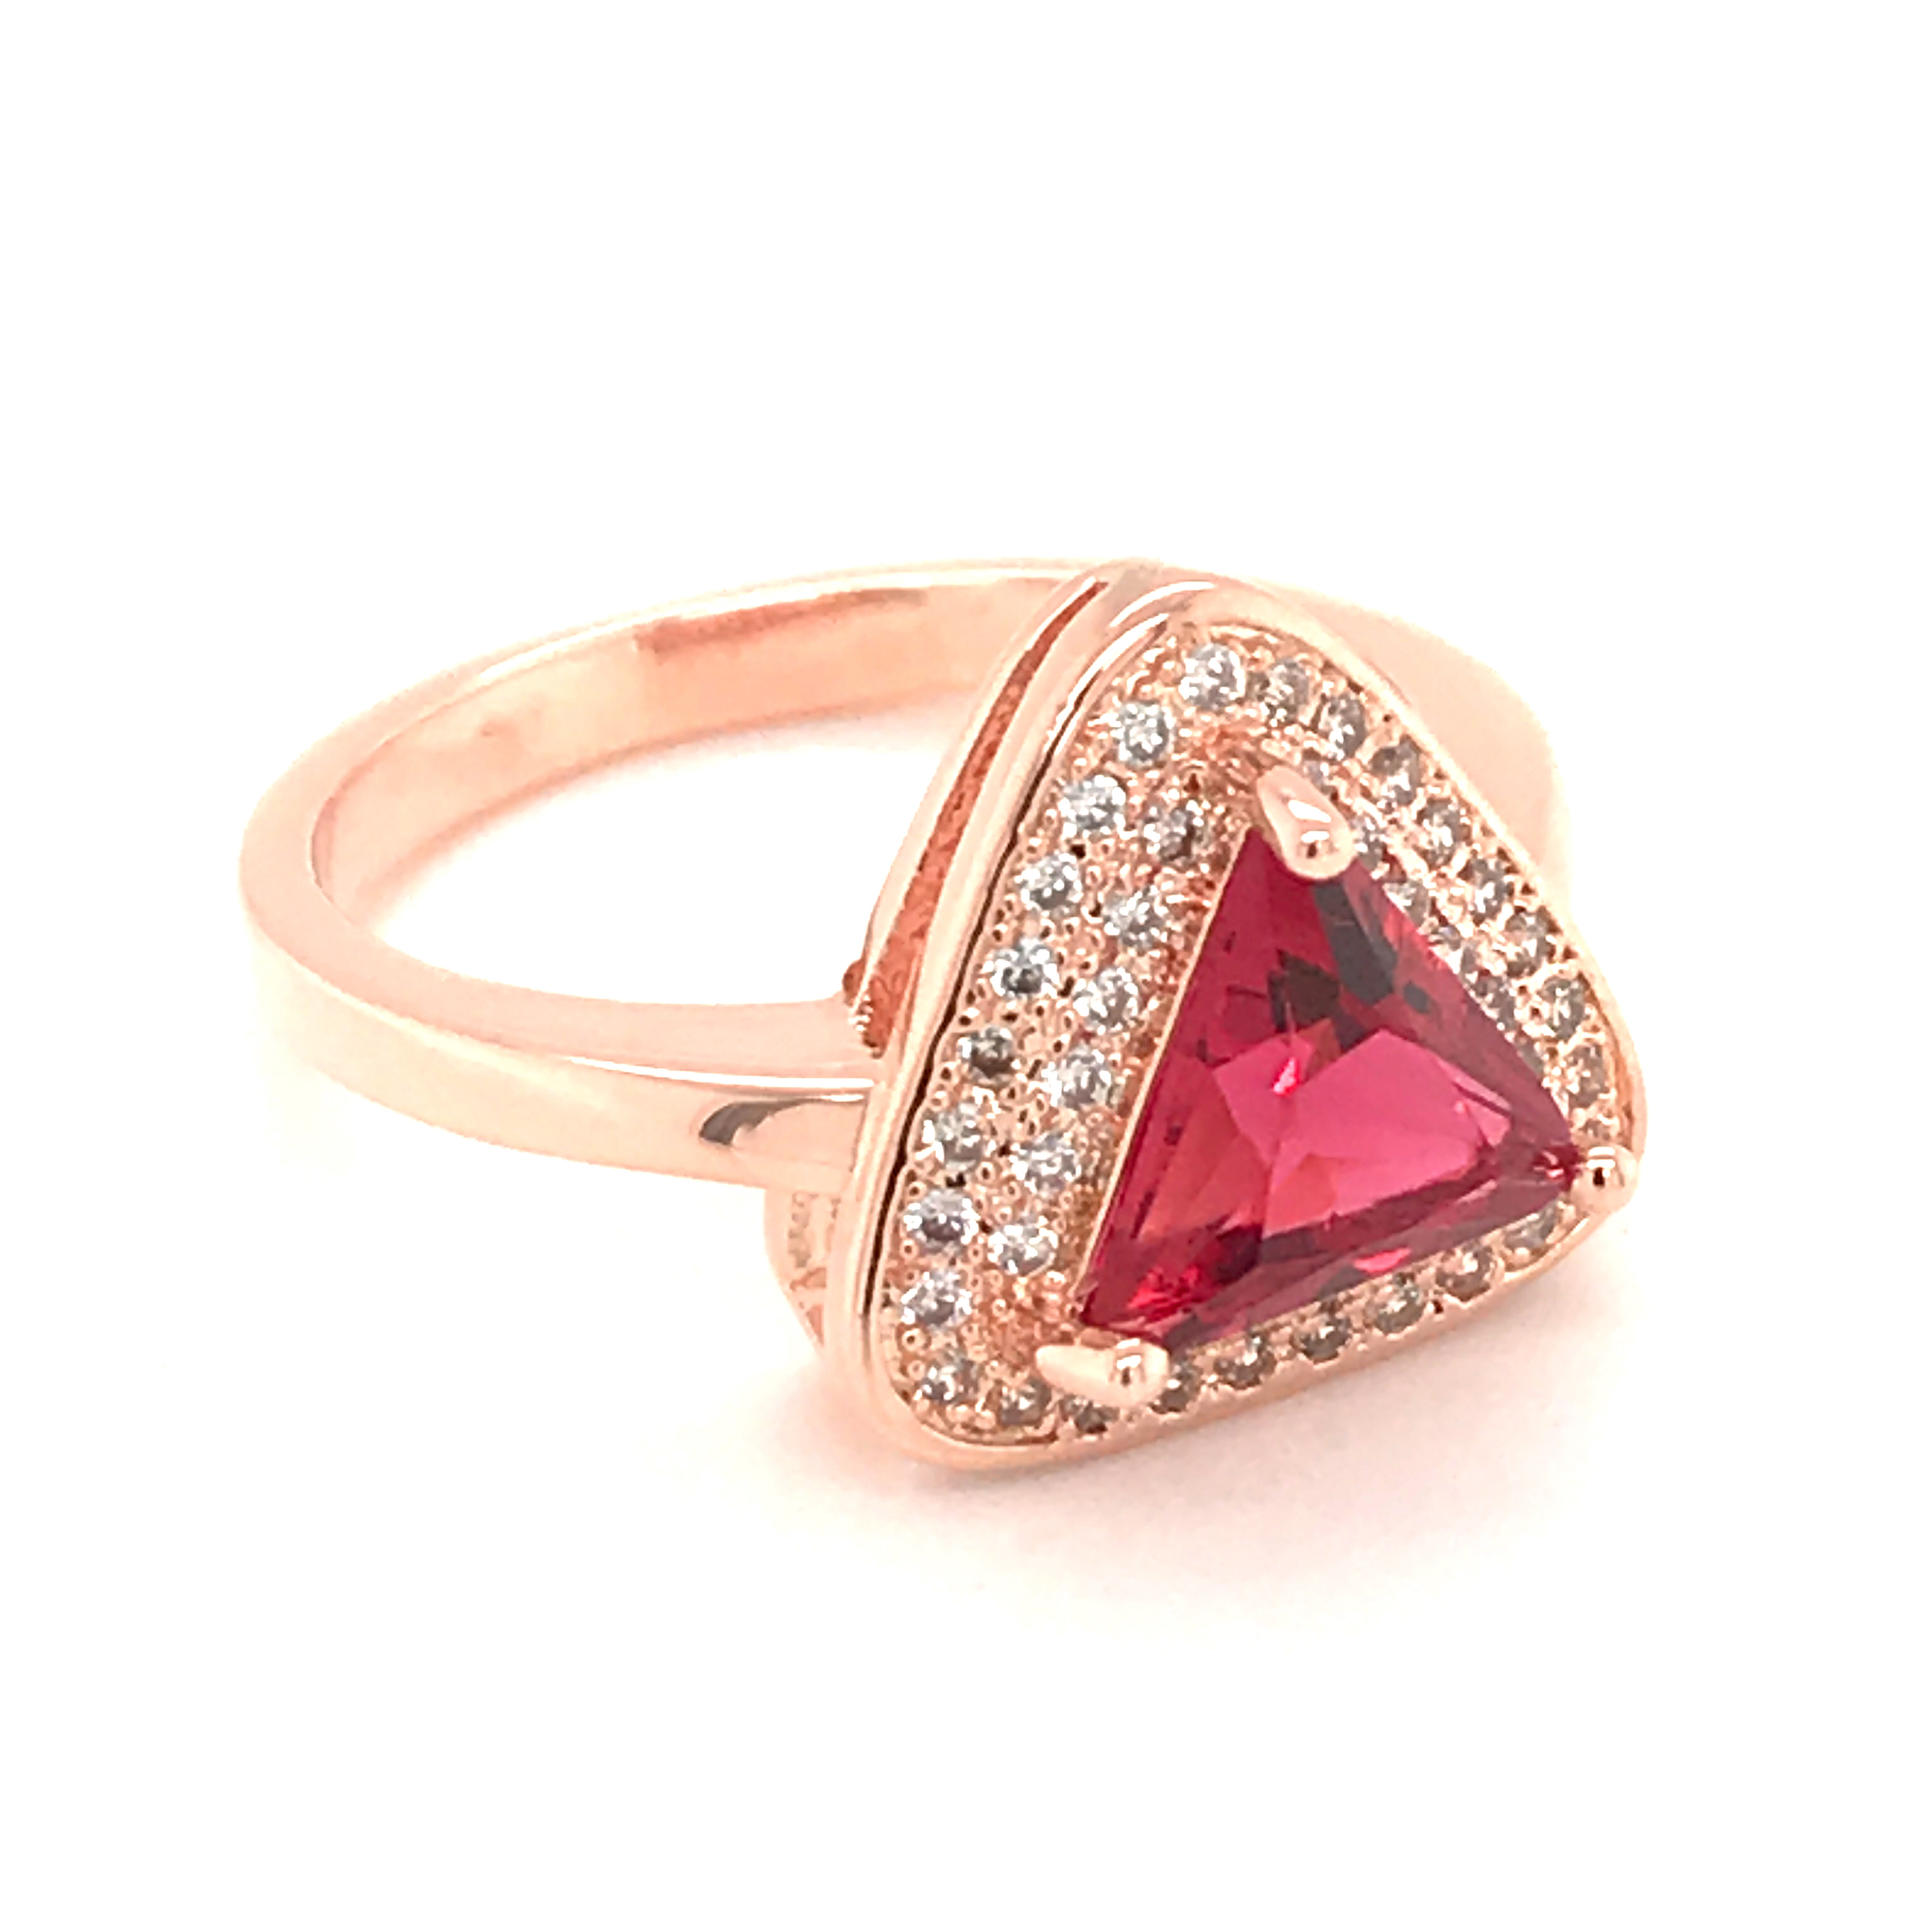 Silver Jewelry Cz Gemstone Natural Red Ruby Rings With Triangle Design